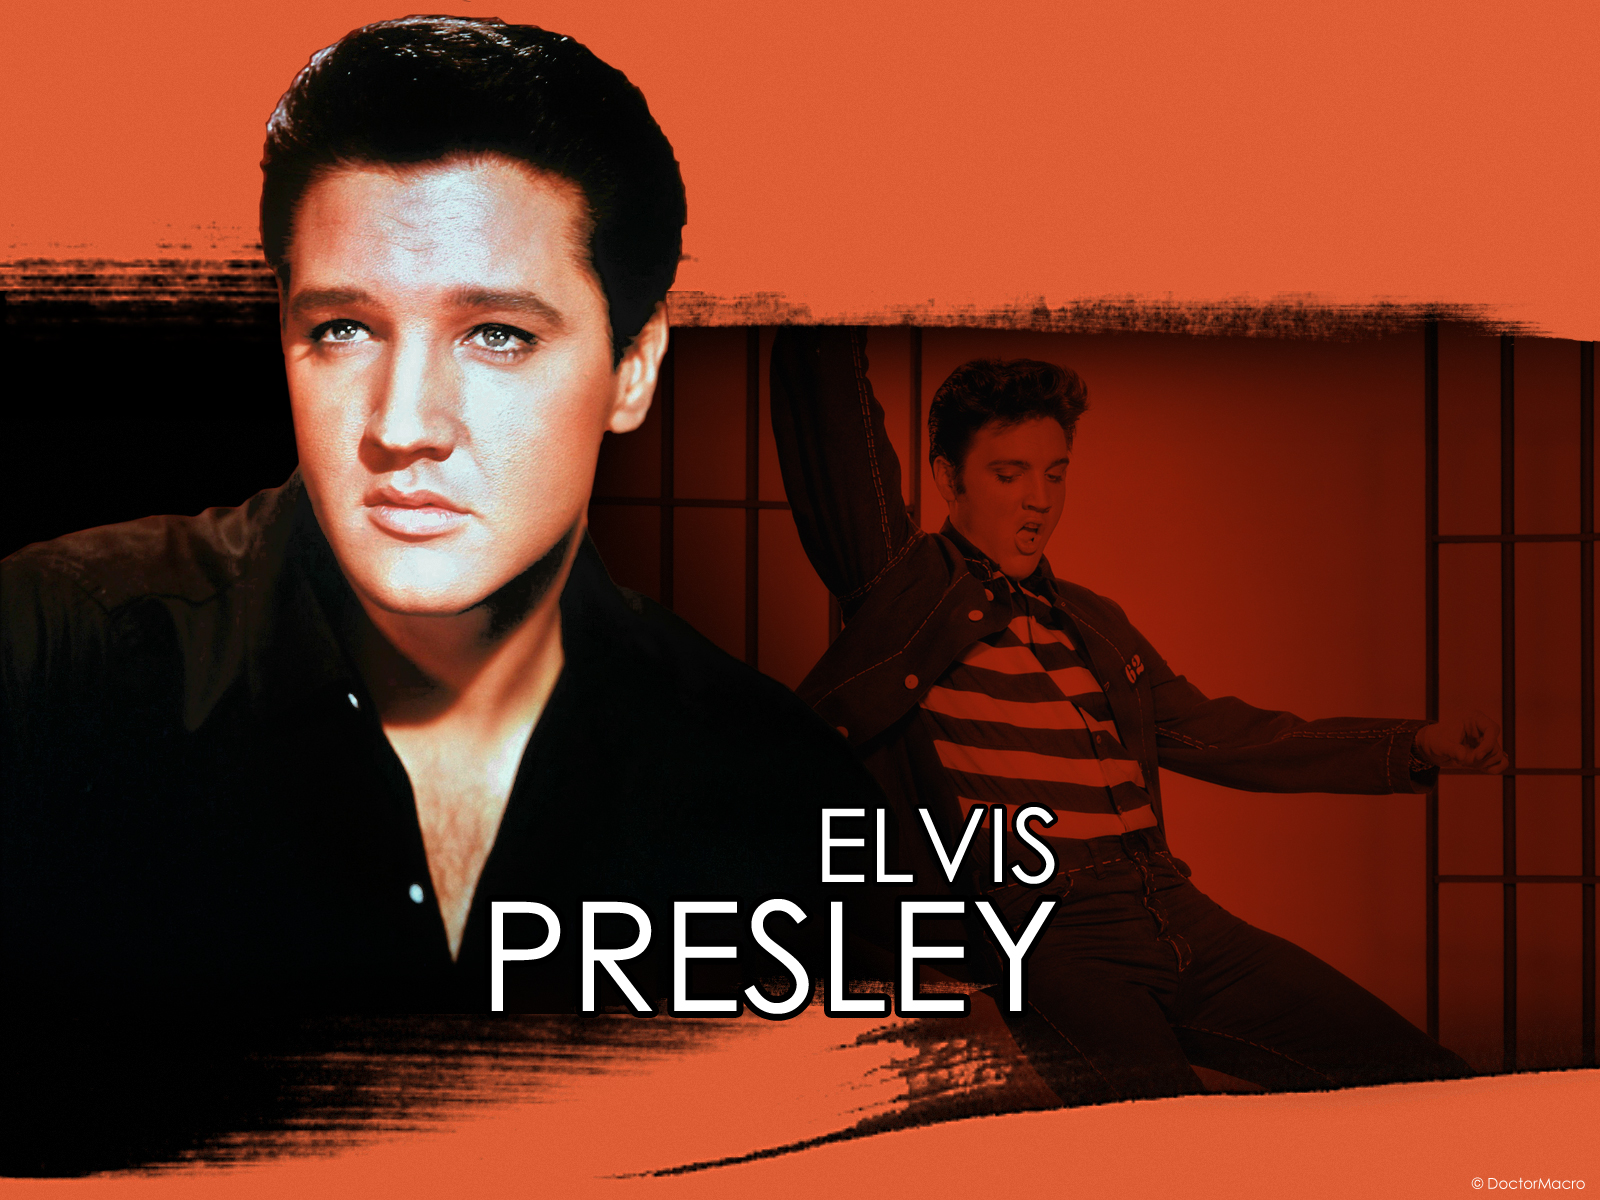 elvis presley wallpapers 01 - photo #24